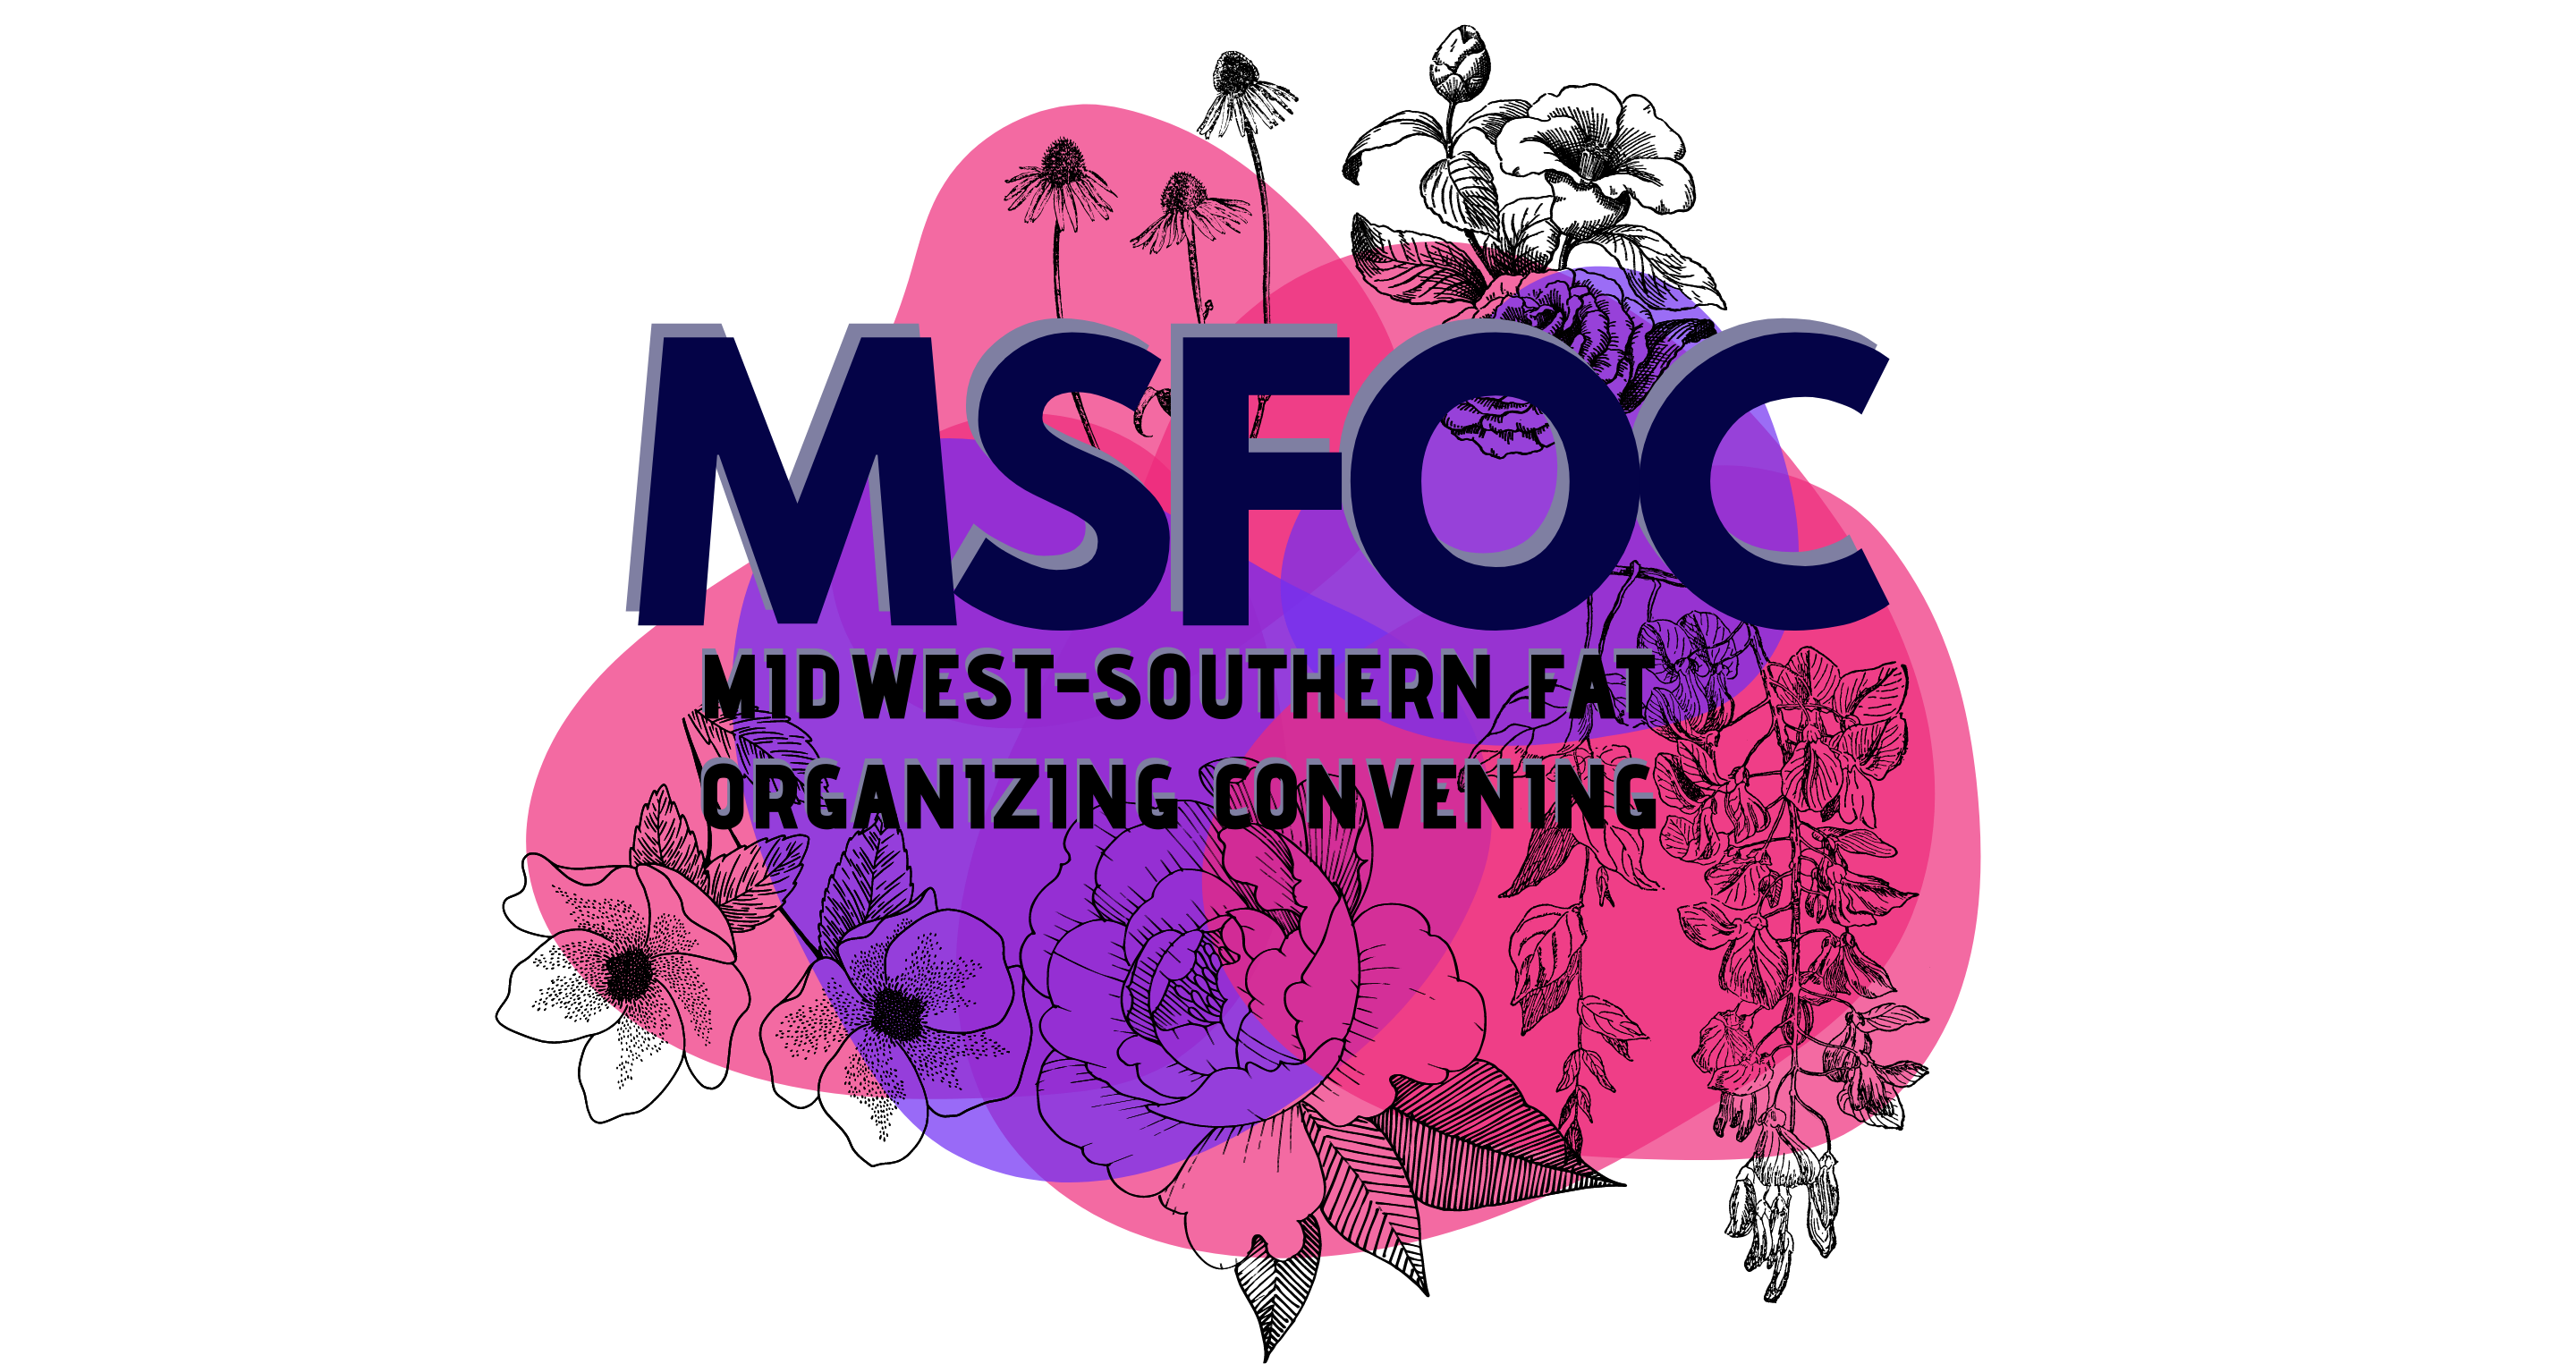 Midwest-Southern Fat Organizing Convening: Oct. 24-25, 2020